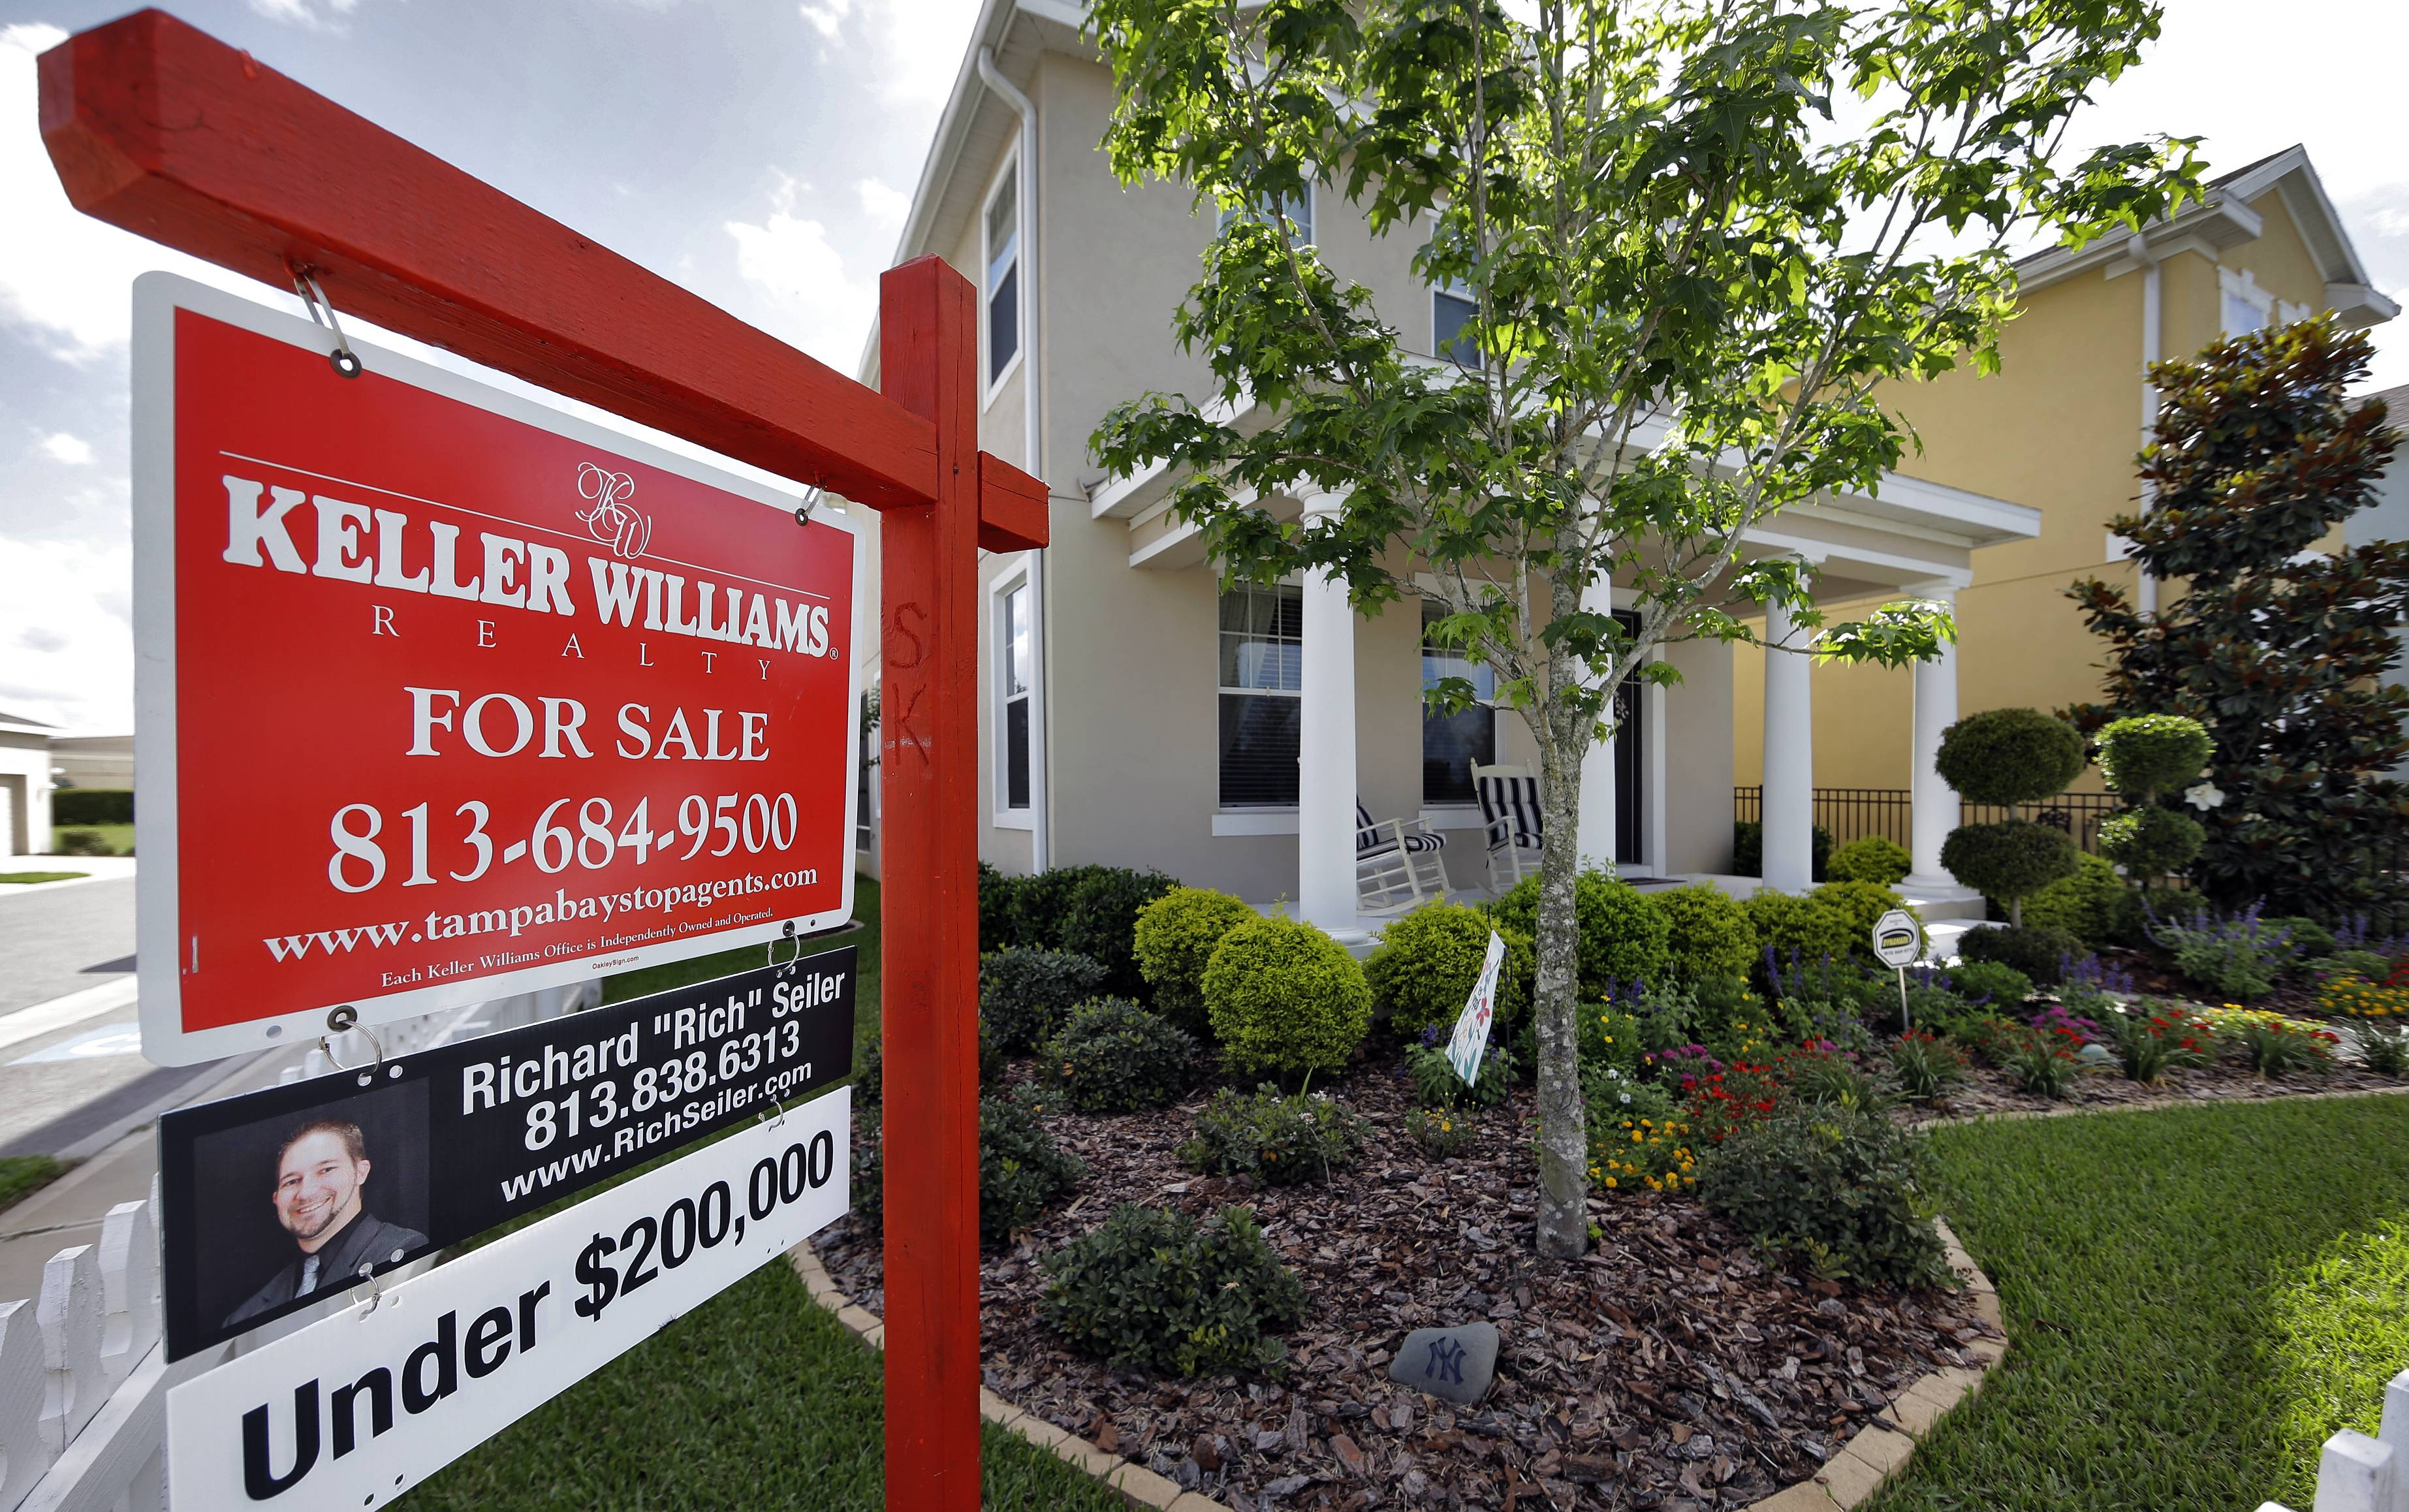 Mortgage applications decrease as refinancing declines